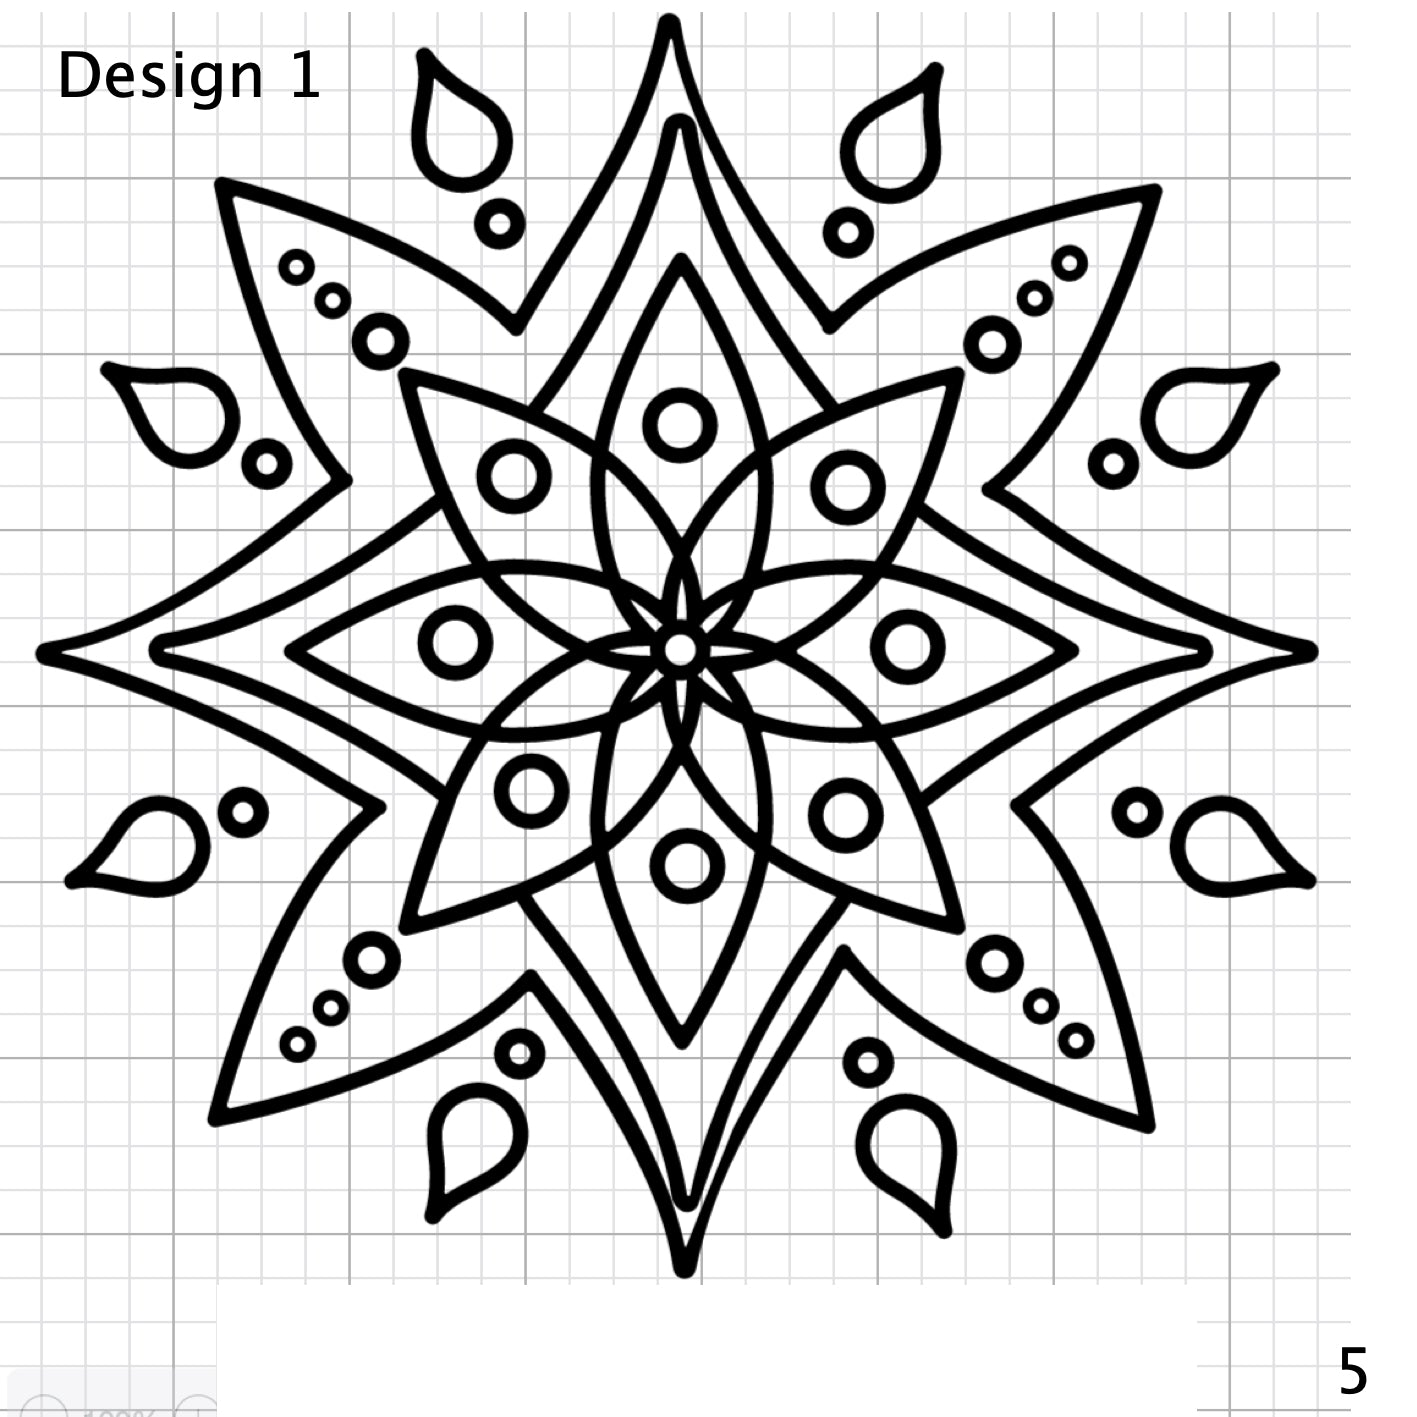 Mandala Designs - Less Detail